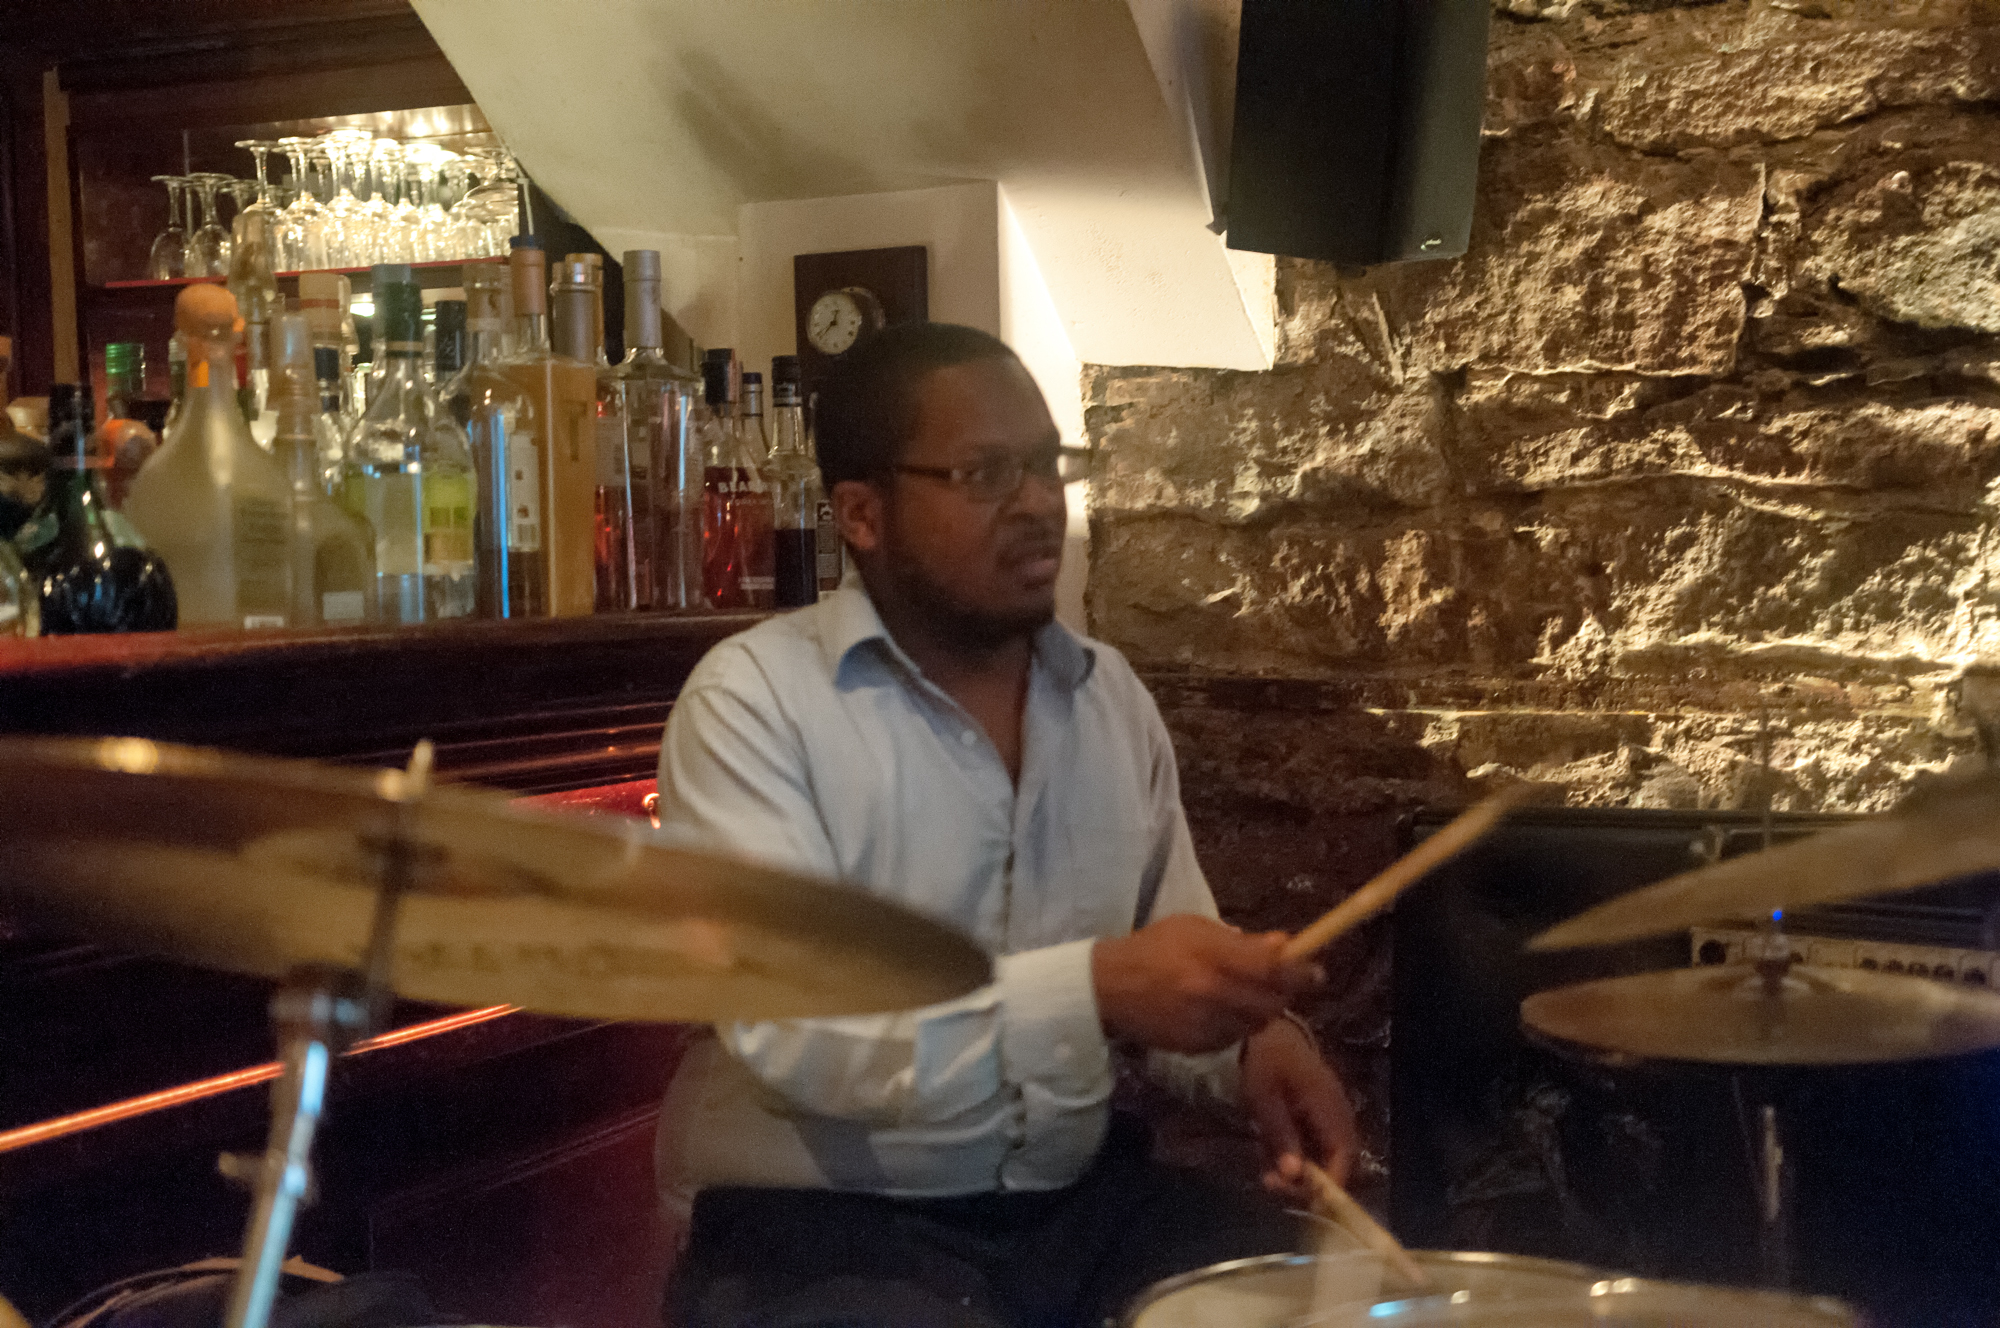 Russell Carter with the Rez Abbasi Trio at the Bar Next Door in New York City